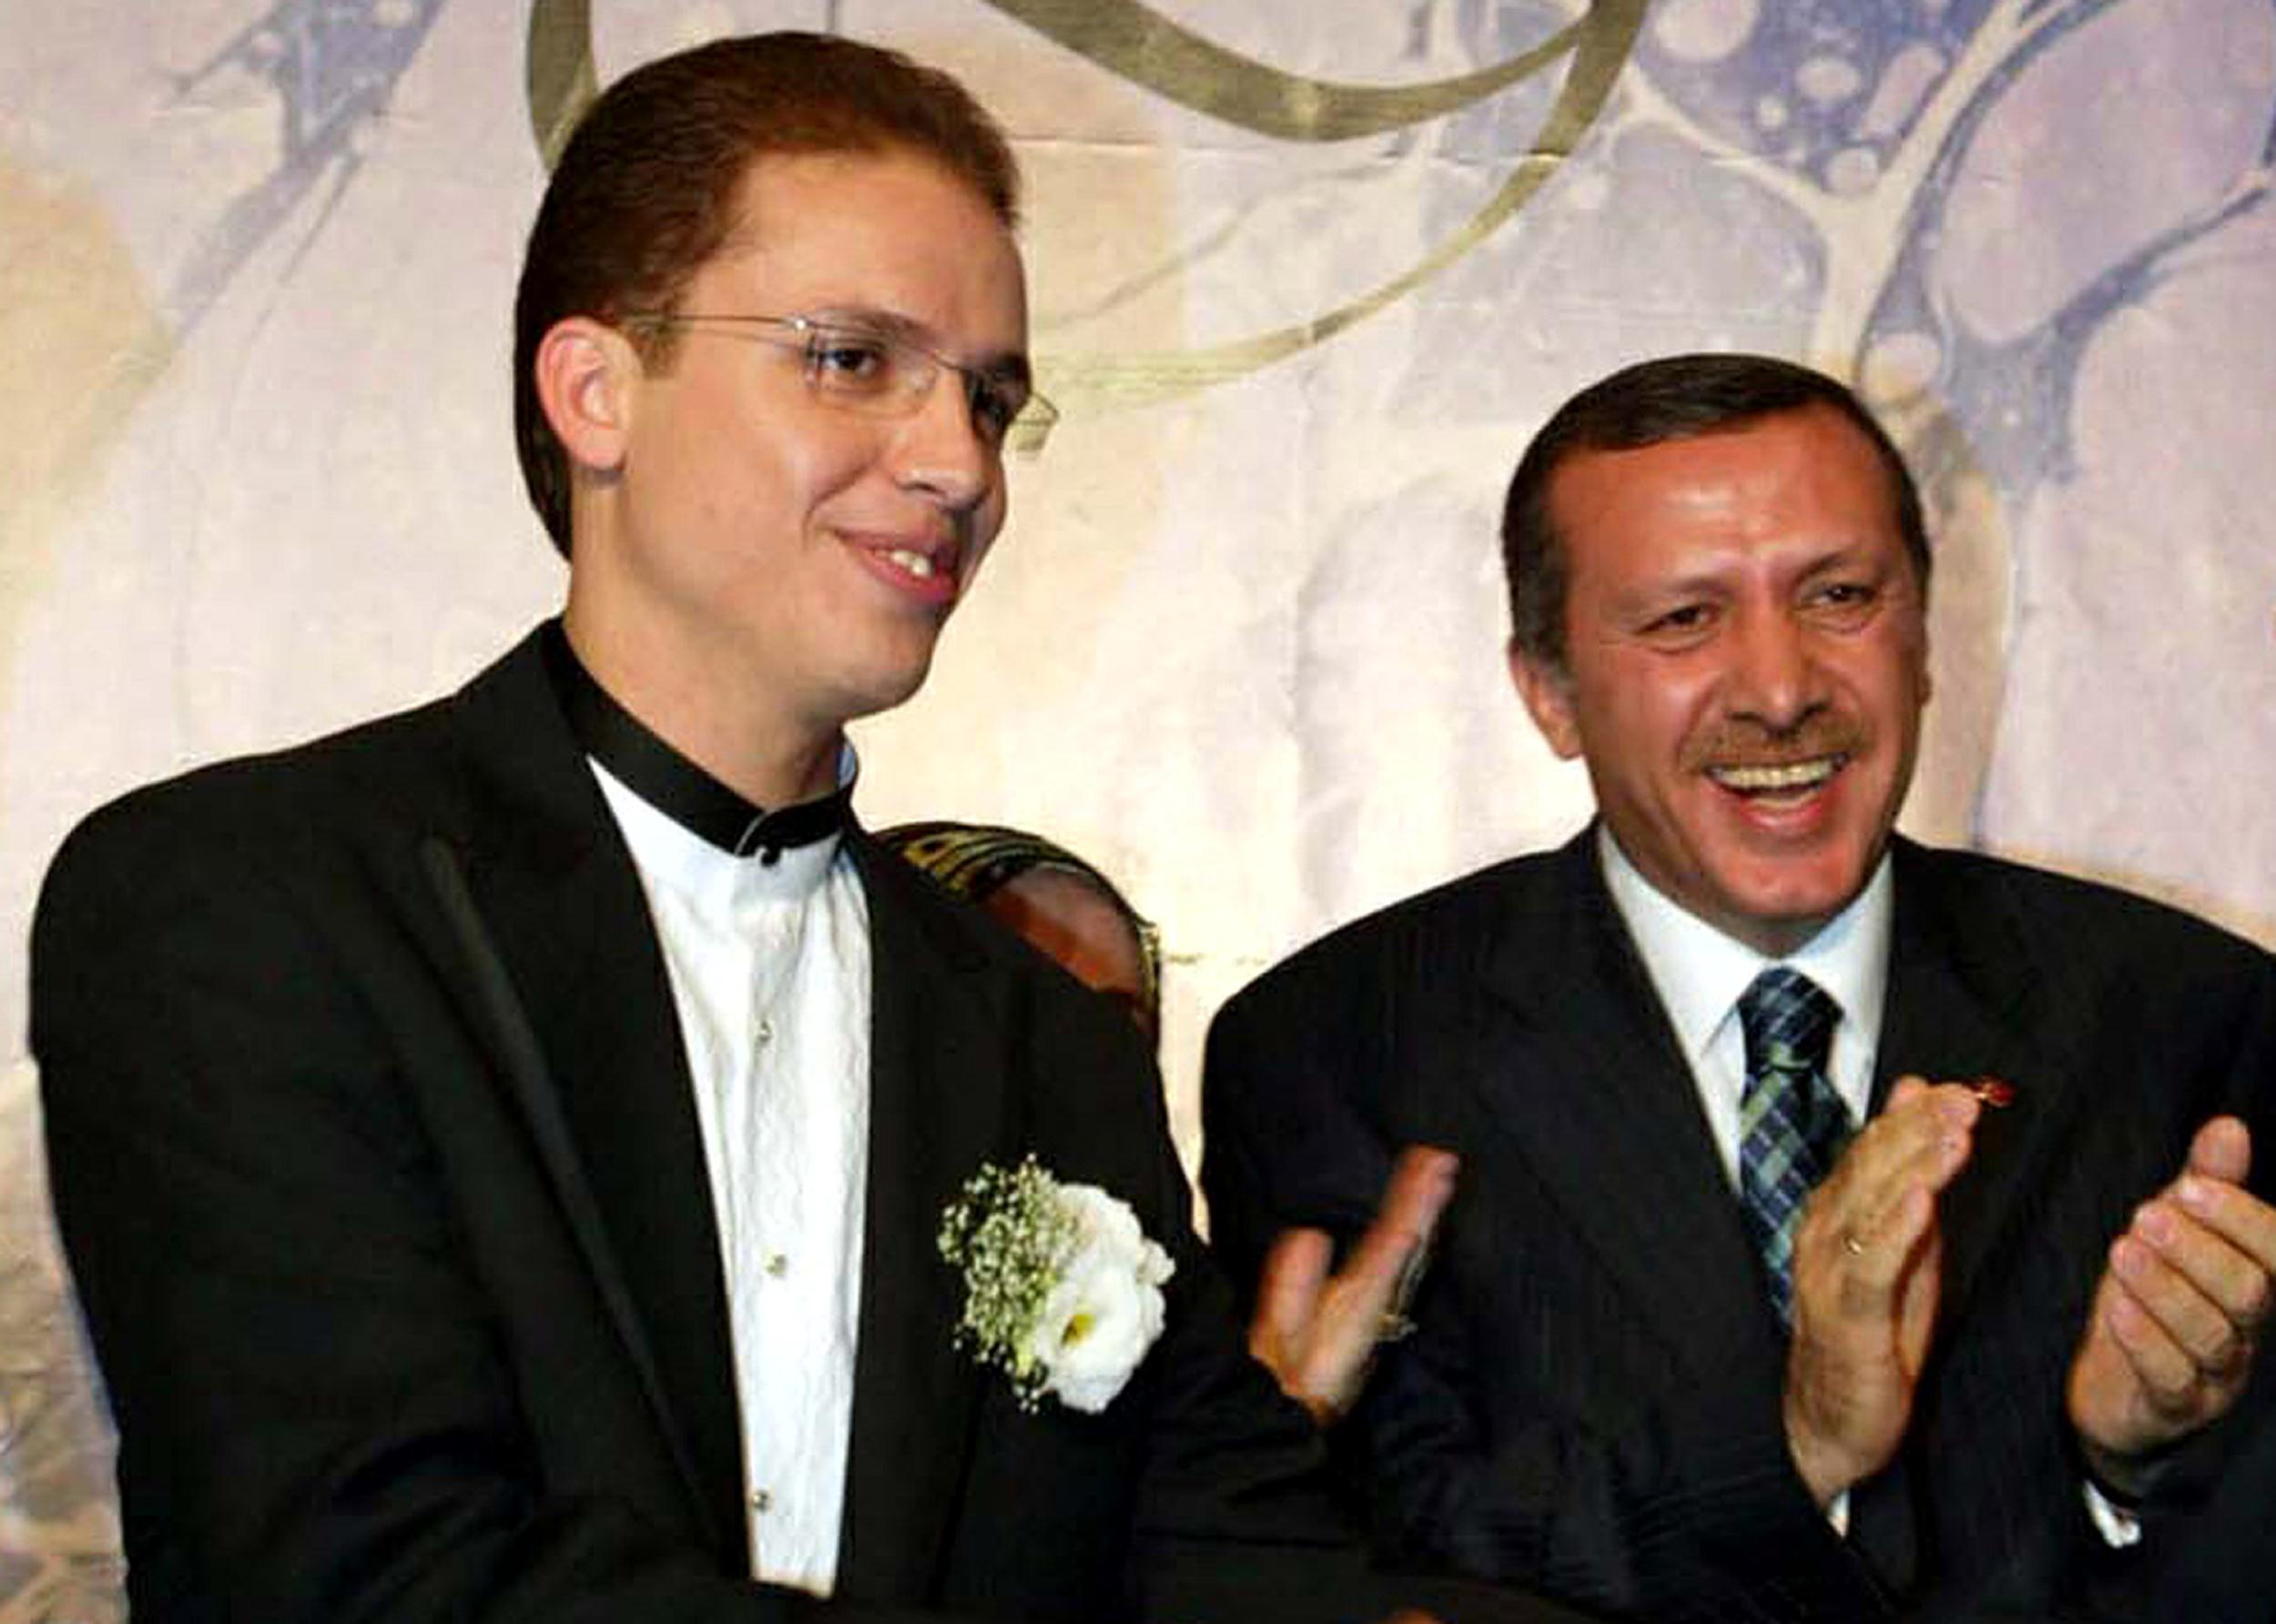 Image: Turkish Prime Minister Tayyip Erdogan, right, with his son Bilal in 2003